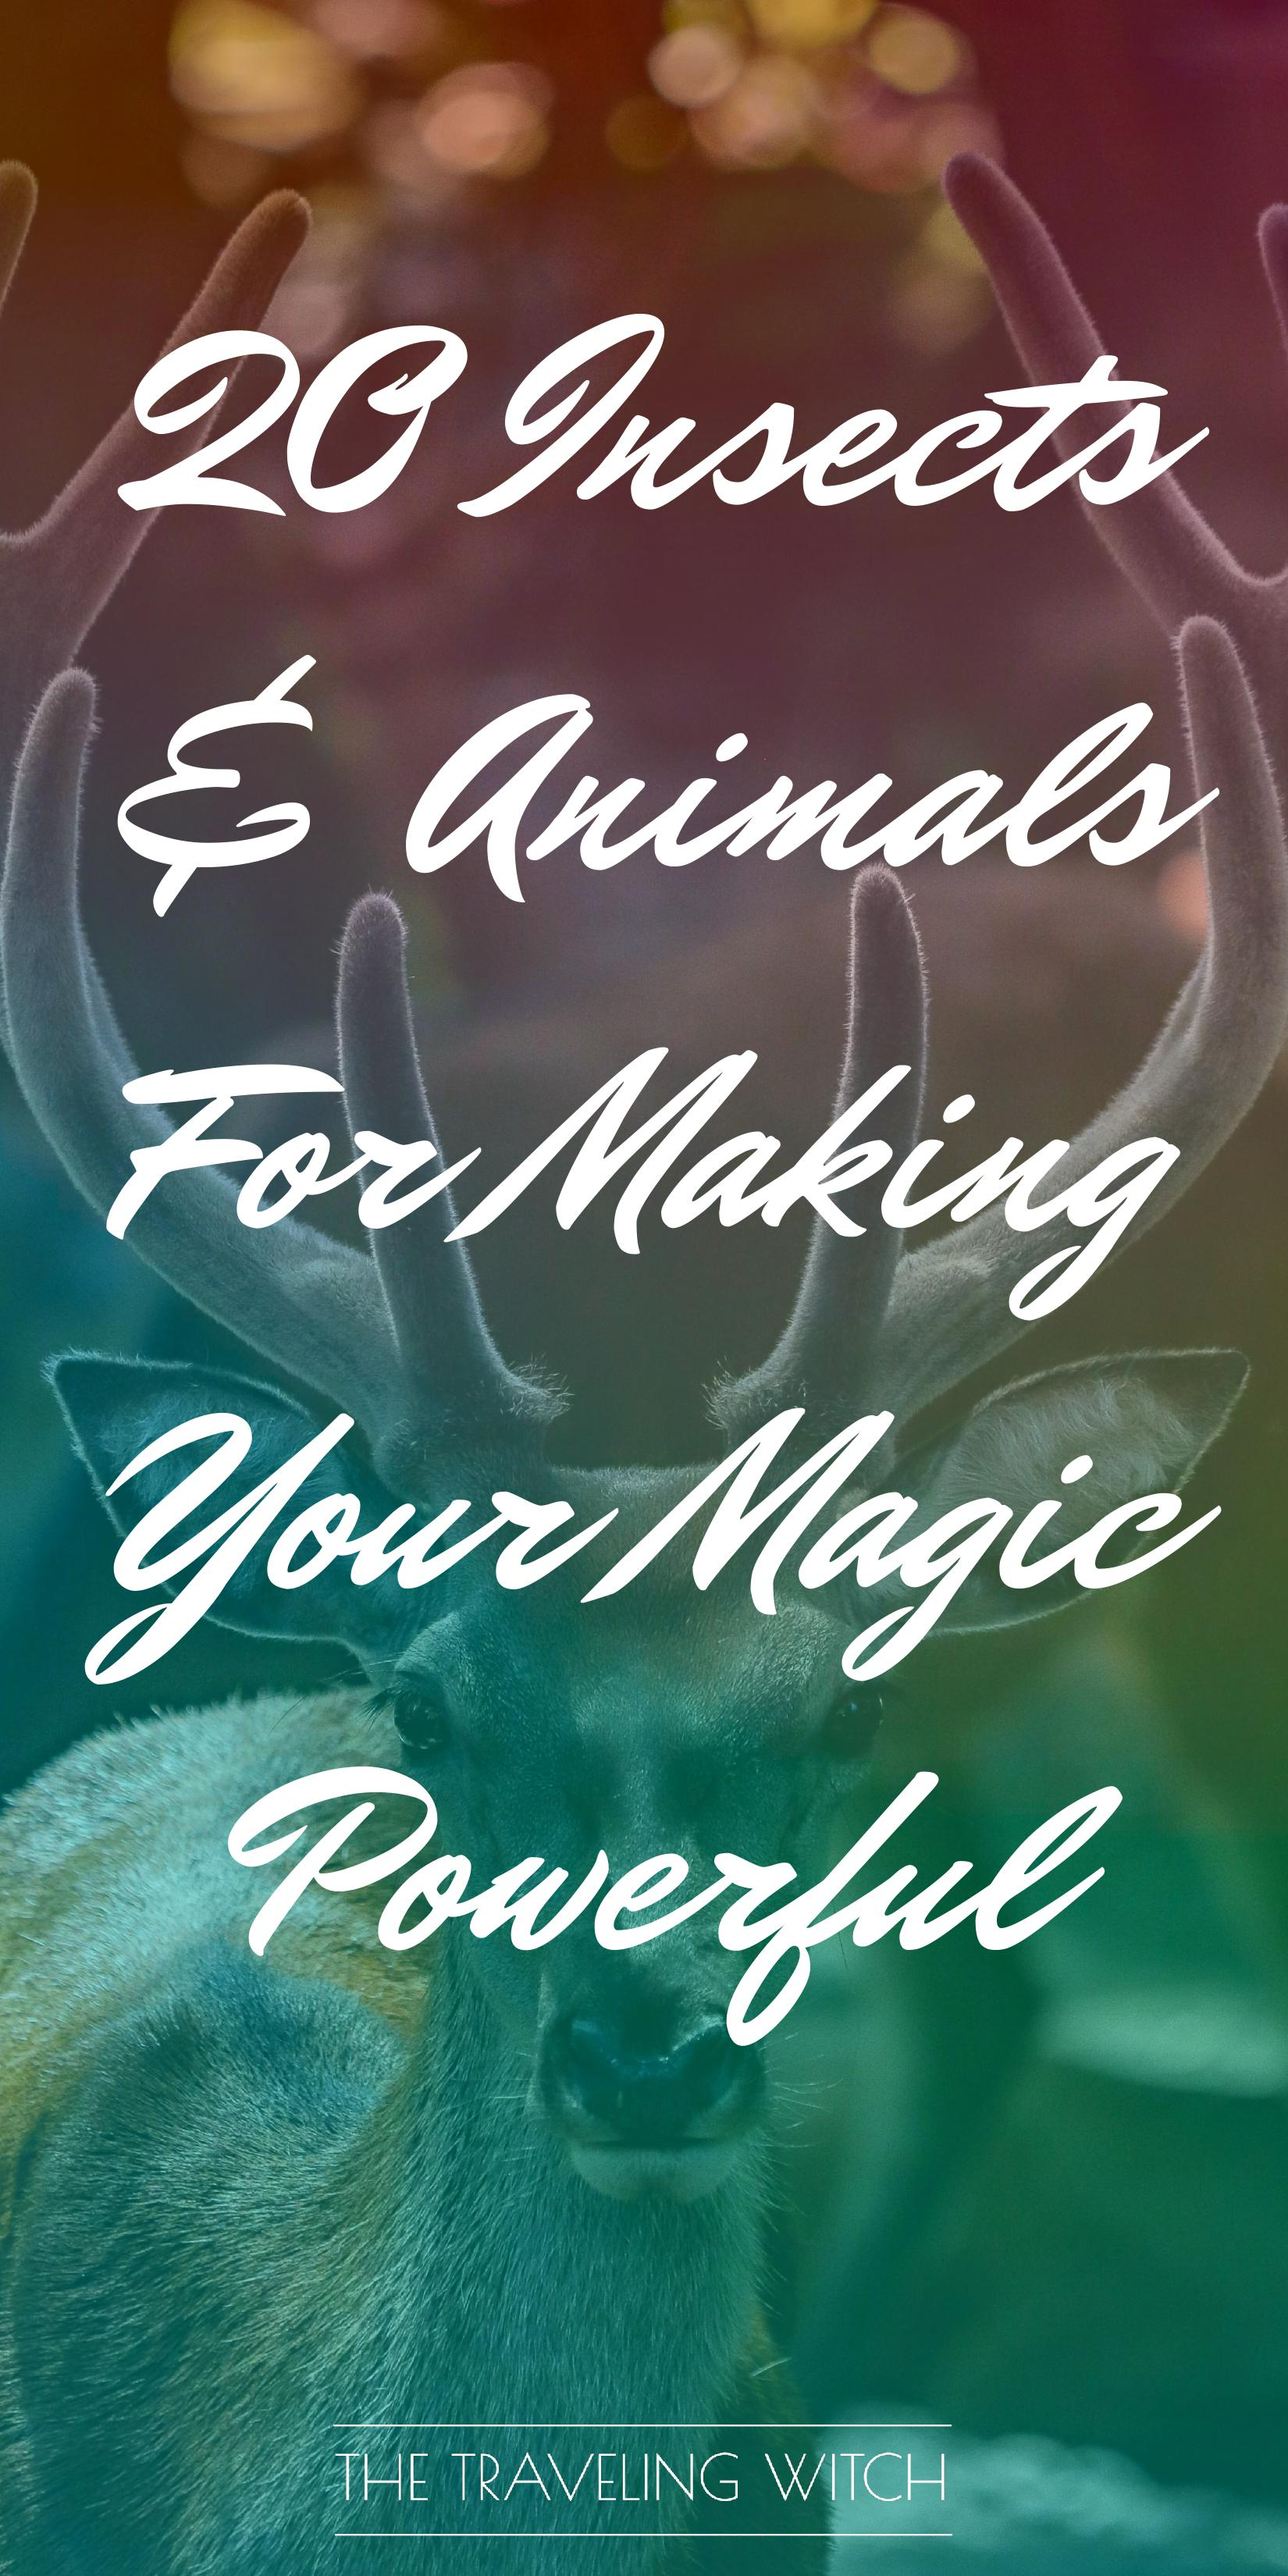 20 Insects & Animals For Making Your Magic Powerful by The Traveling Witch #Witchcraft